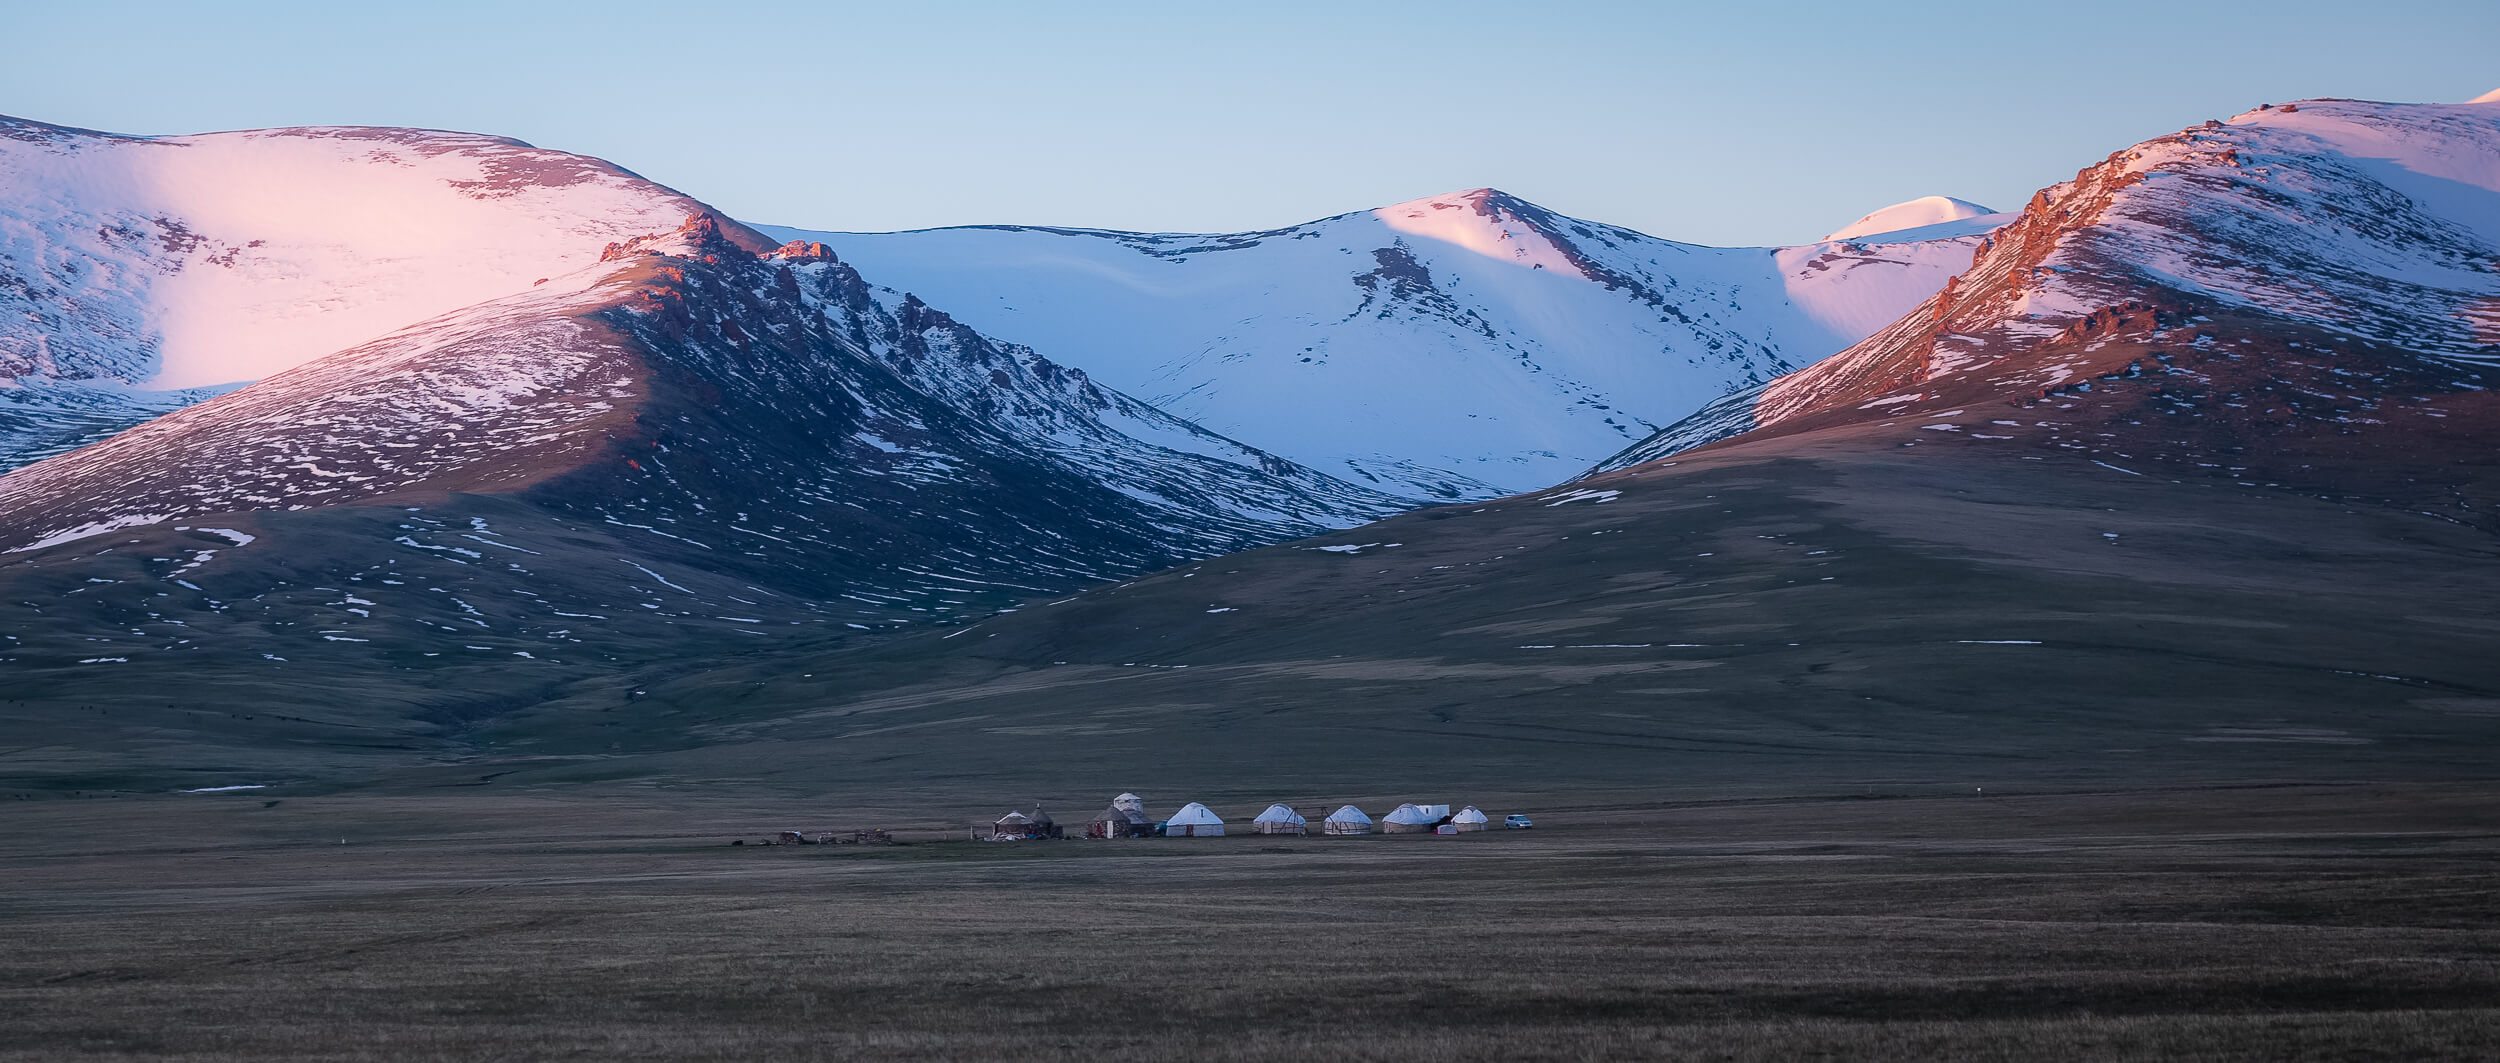 Yurts on a flat backdropped by snowcapped mountains in Kyrgyzstan - - next undiscovered holiday destination